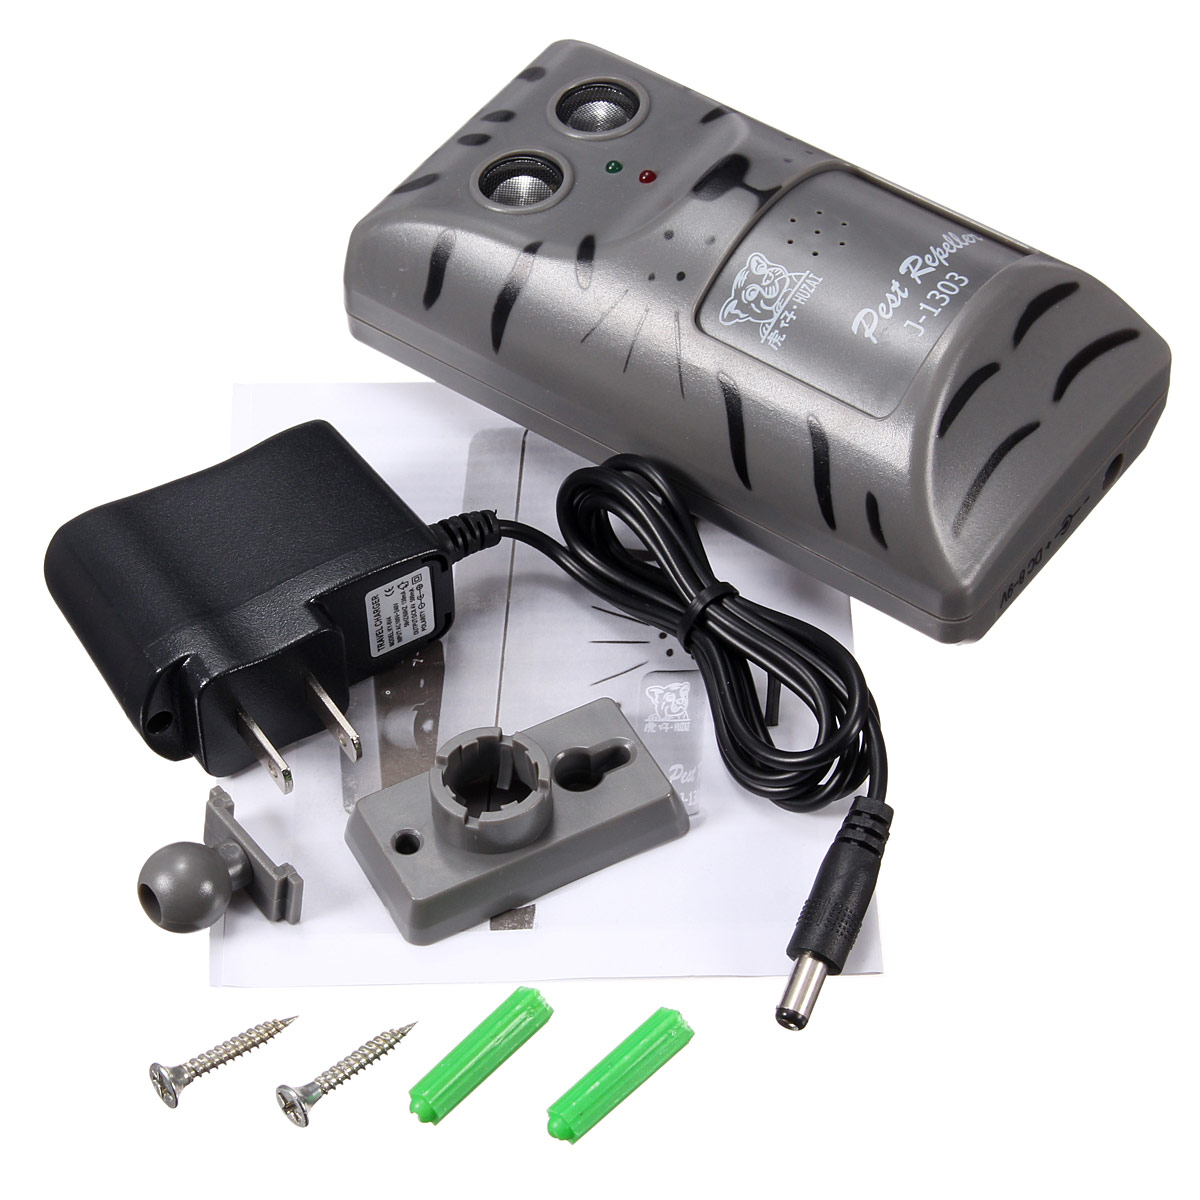 Electronic Ultrasonic Pest Rat Mouse Insect Rodent Control Auto Is The Circuit Diagram Of An Mosquito Repellerthe